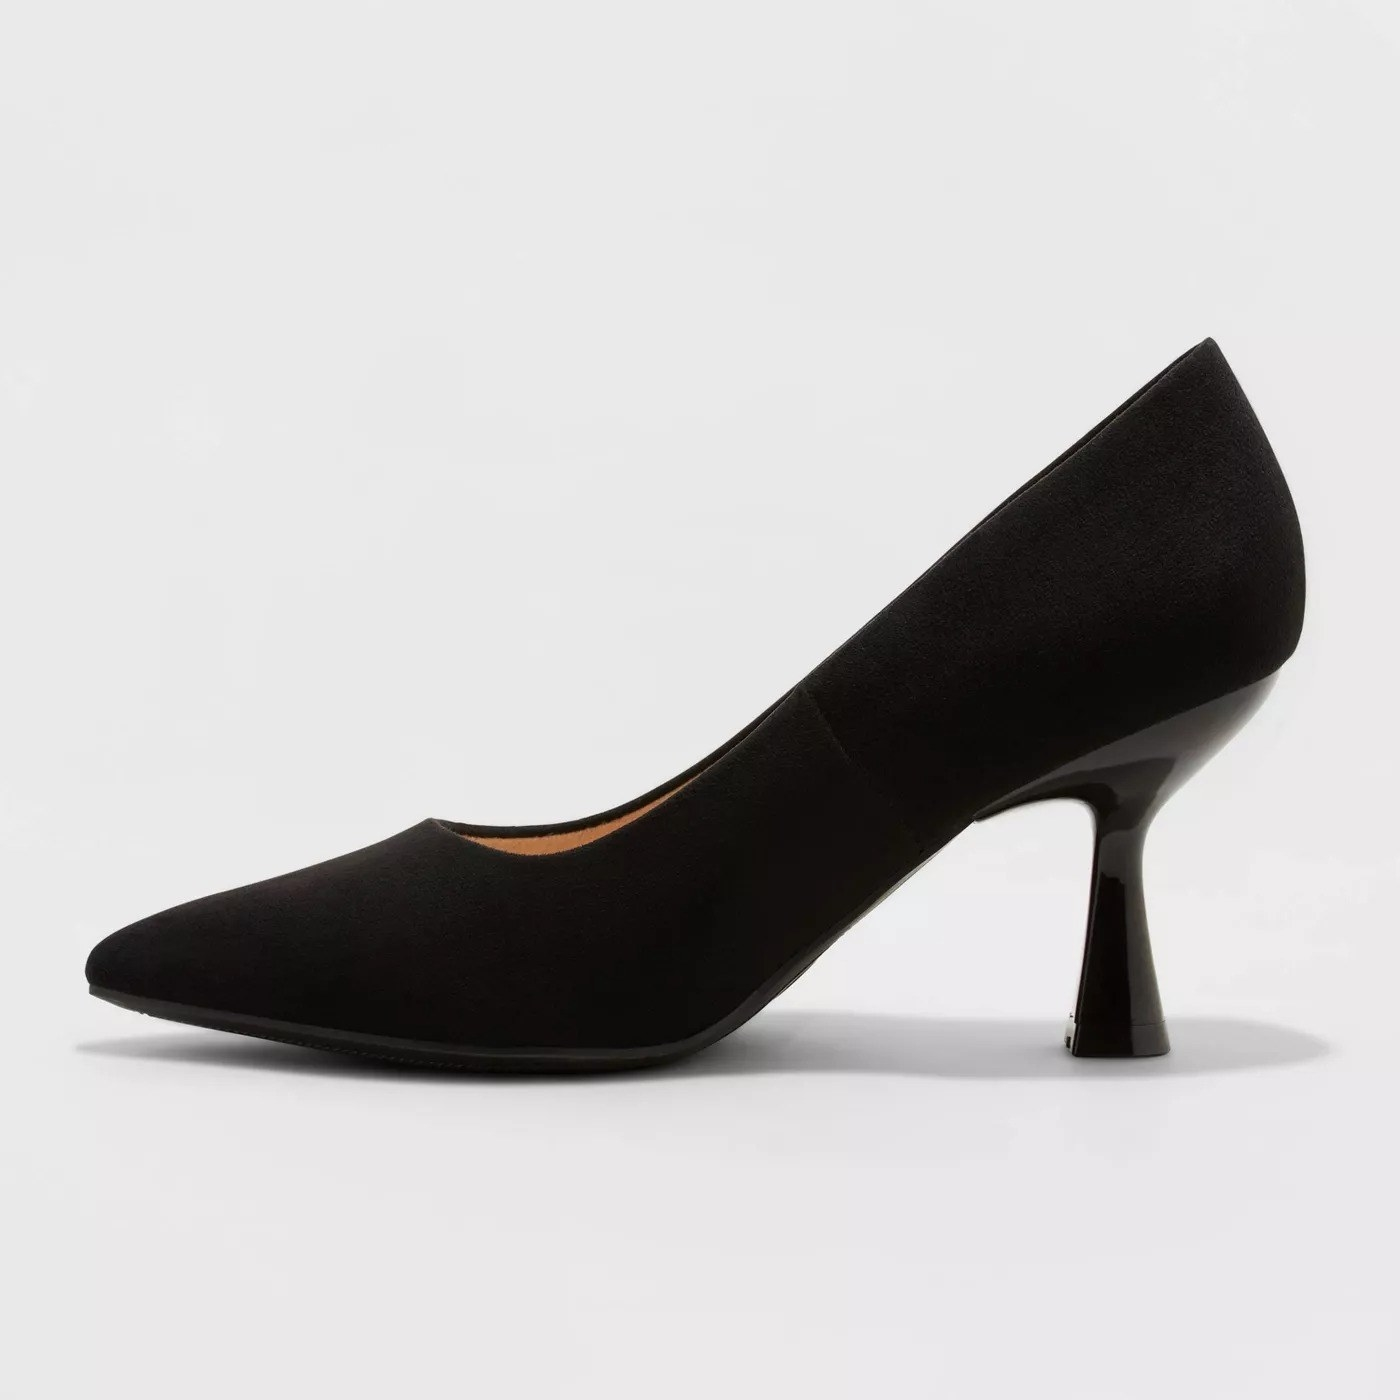 The black pump with a block heel